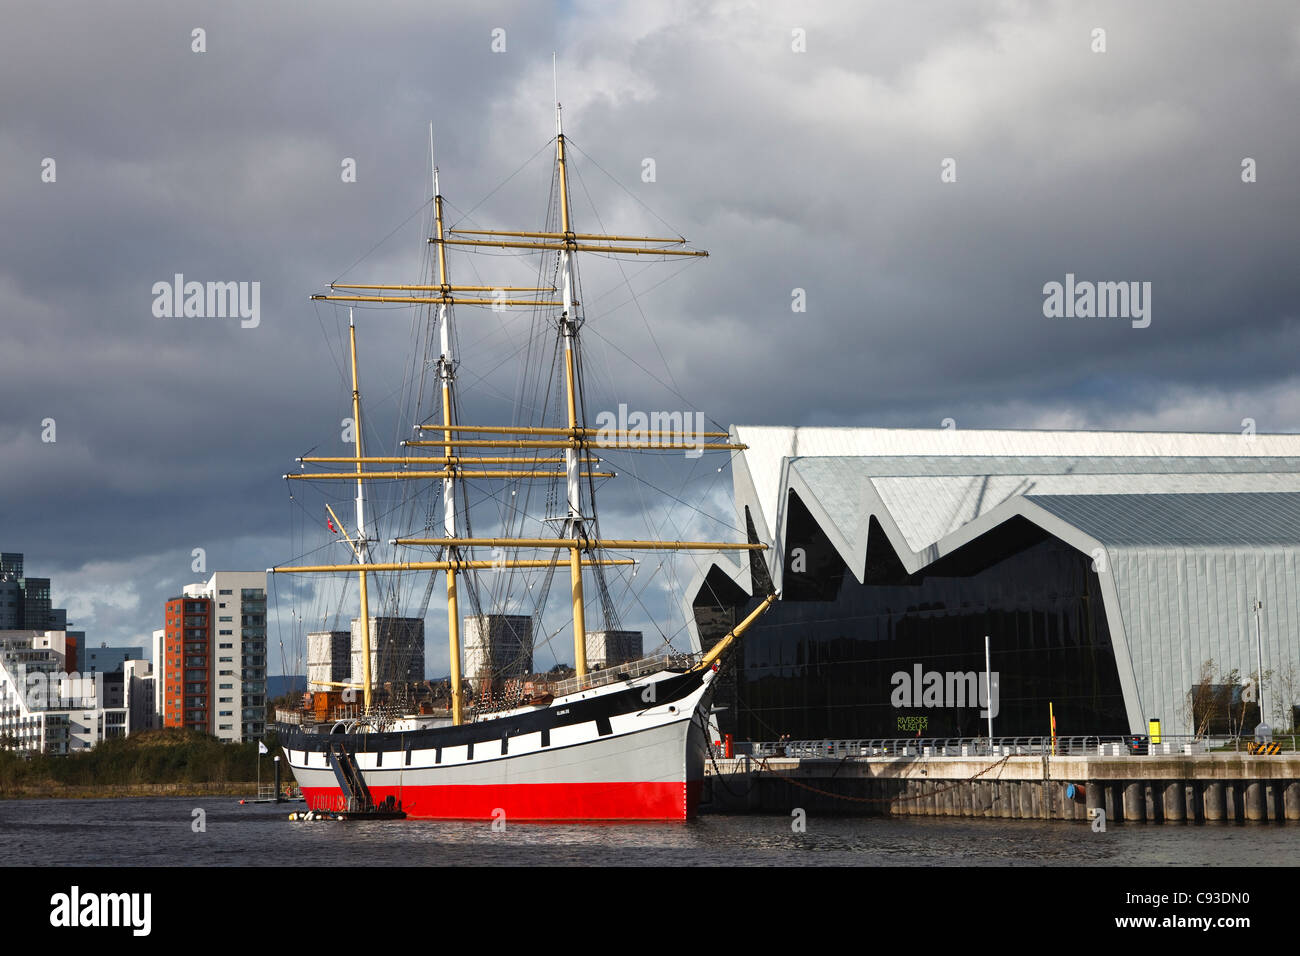 Riverside Museum, with the tall ship 'Glenlea' on the River Clyde, at Partick, Glasgow, Scotland, UK, Great - Stock Image